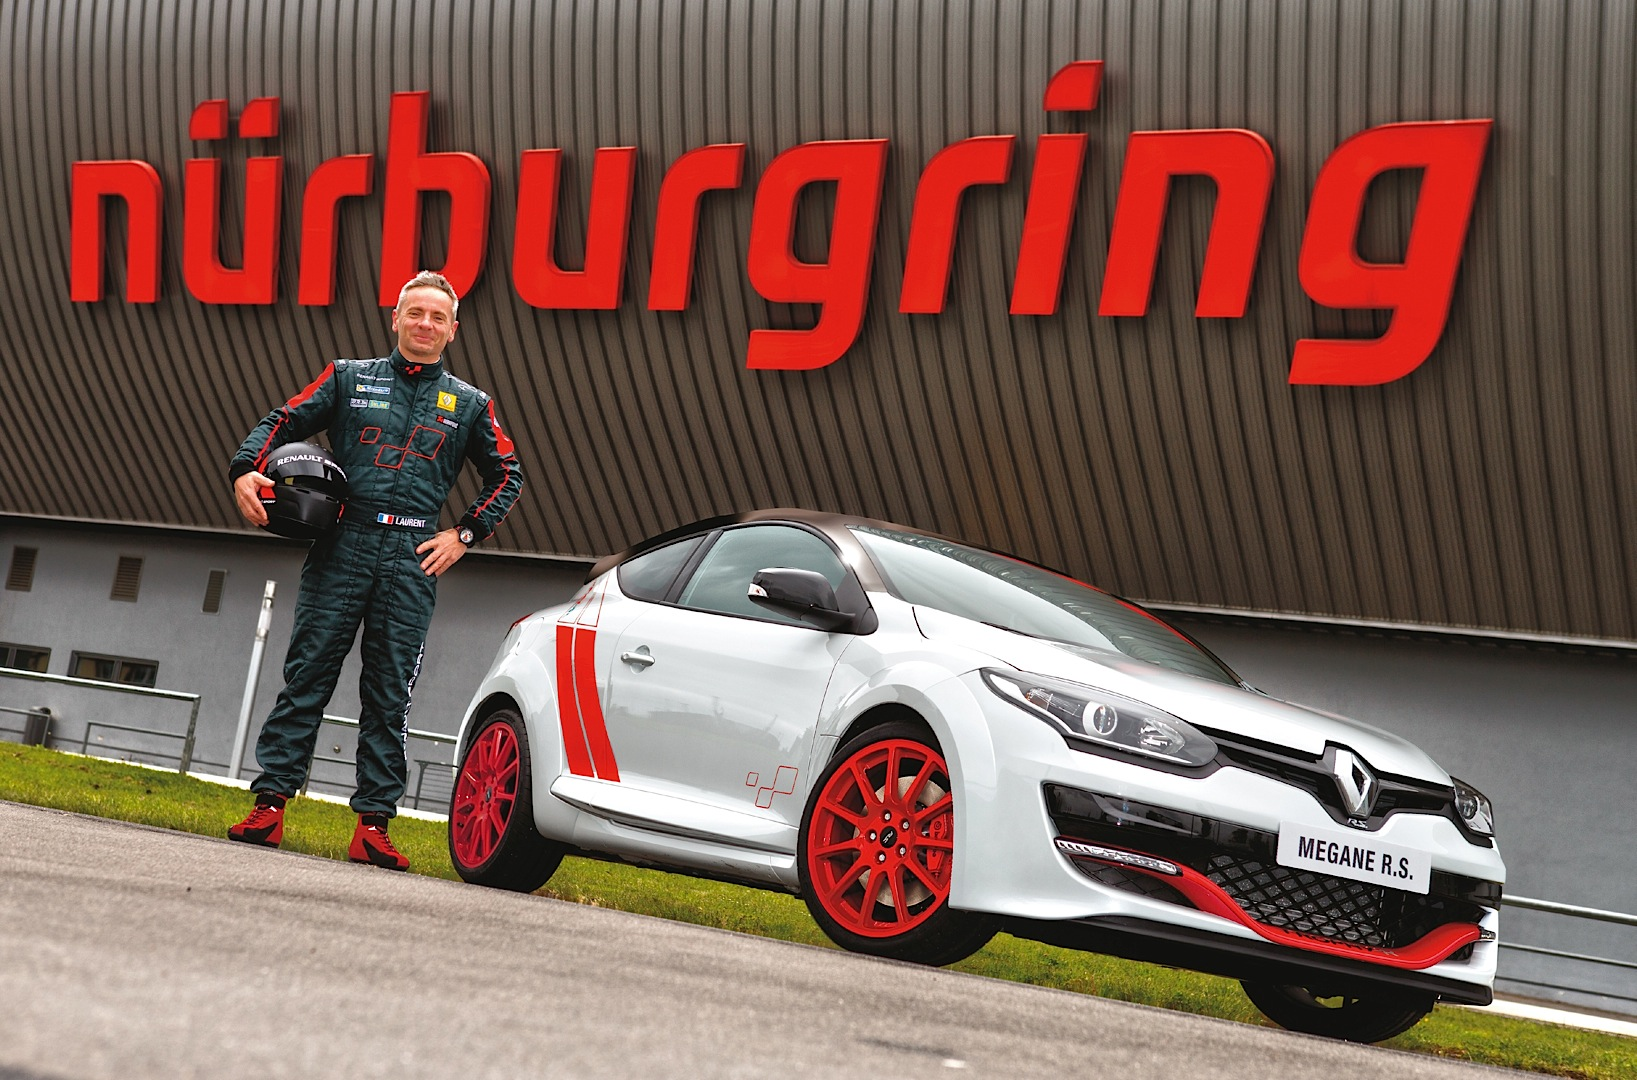 renault-megane-rs-275-trophy-r-sets-new-nurburgring-lap-record-75436_29